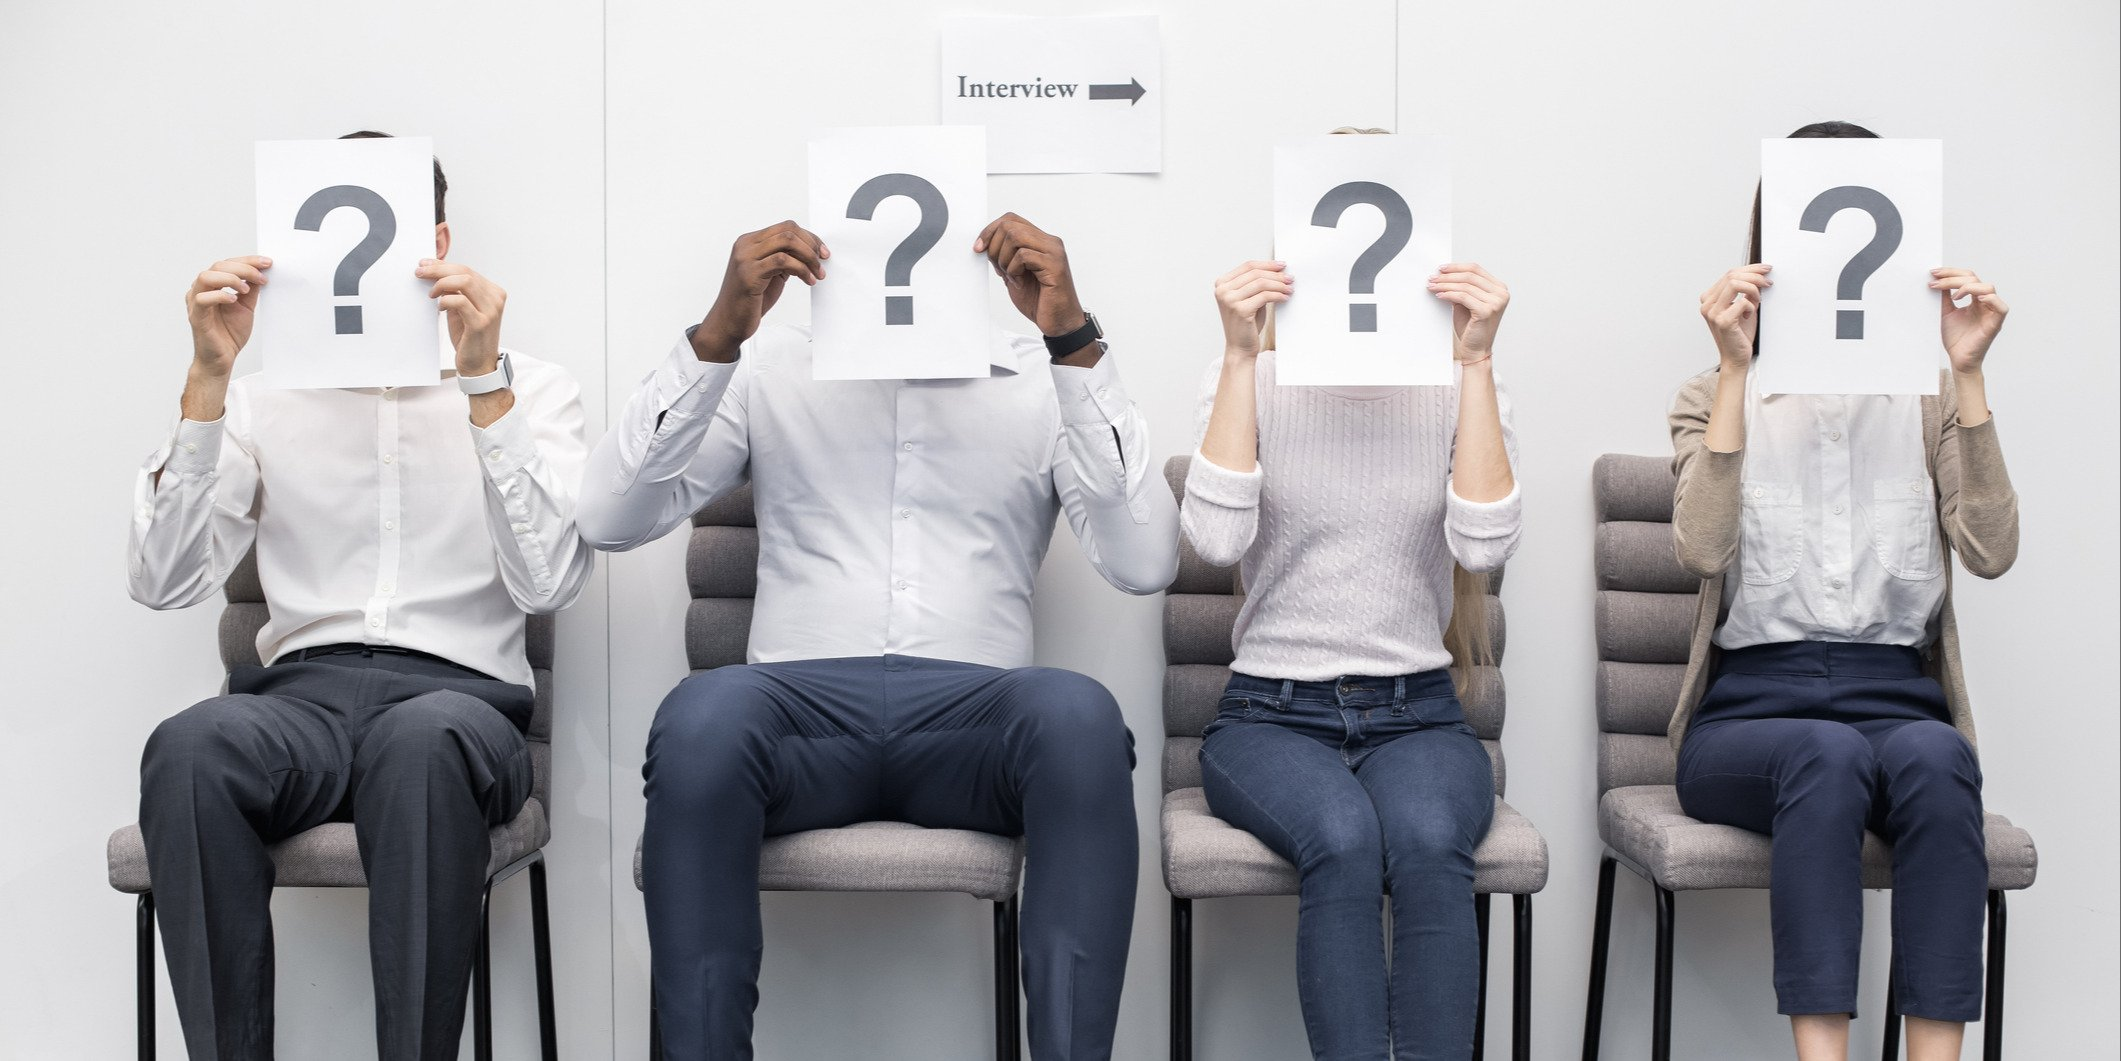 Understanding Talent and Fit with Better Interview Questions